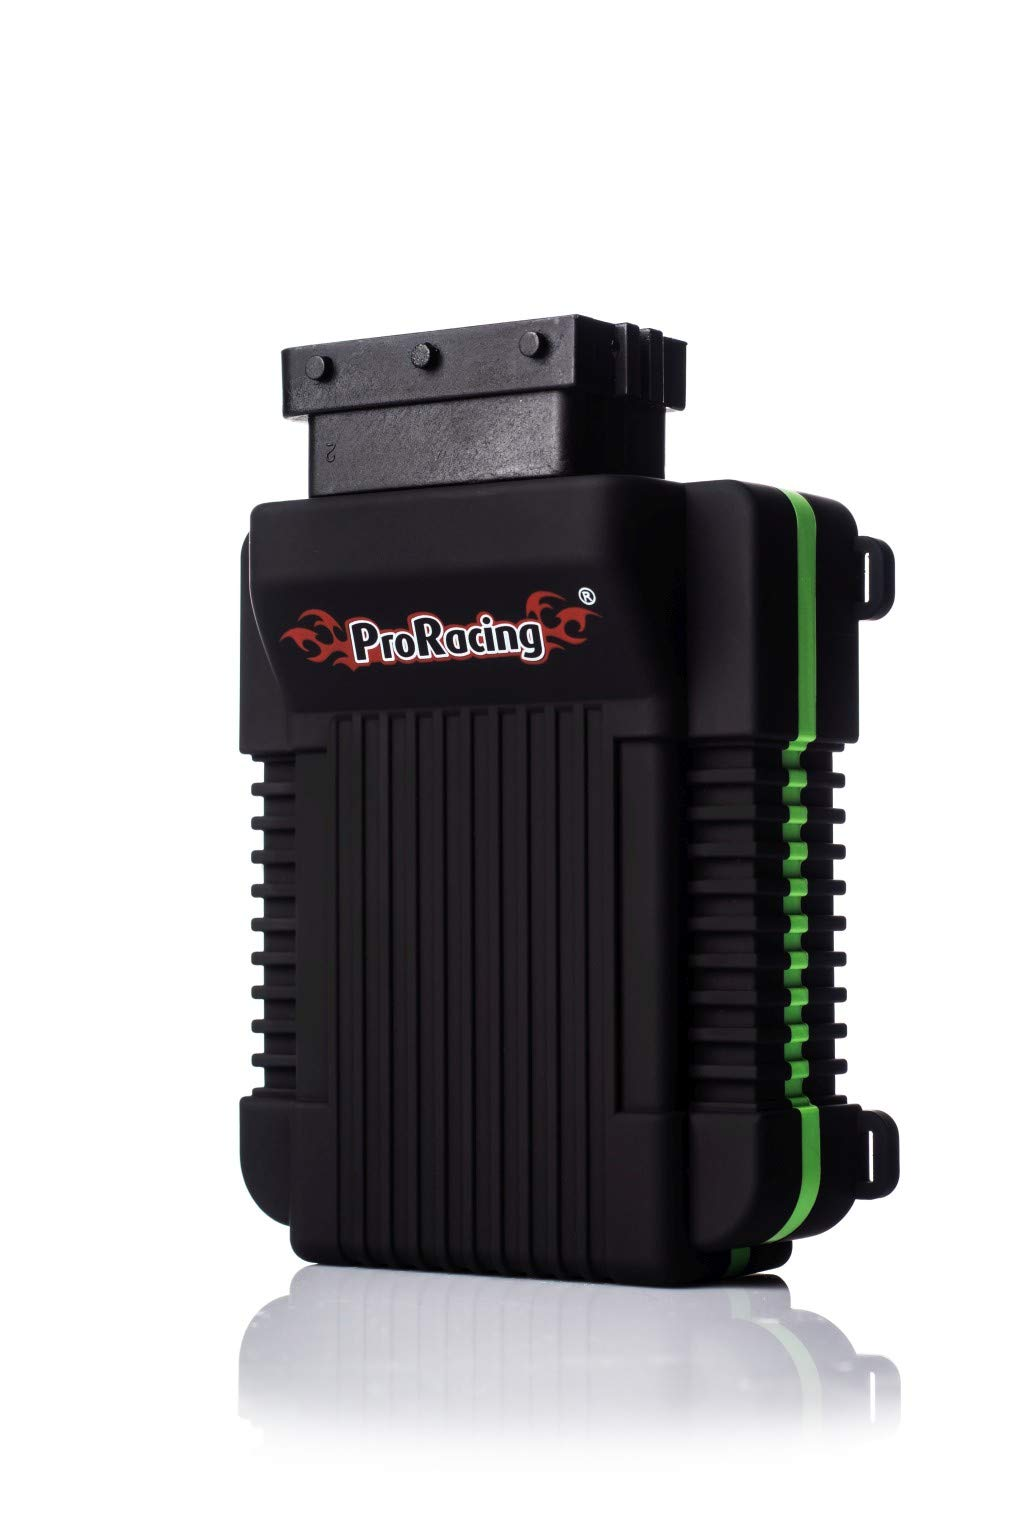 ProRacing X 11508 Chip Tuning UNICATE für V.O.L.V.O XC70 II 2.0D3 120 KW / 163 PS / 400 NM von ProRacing X